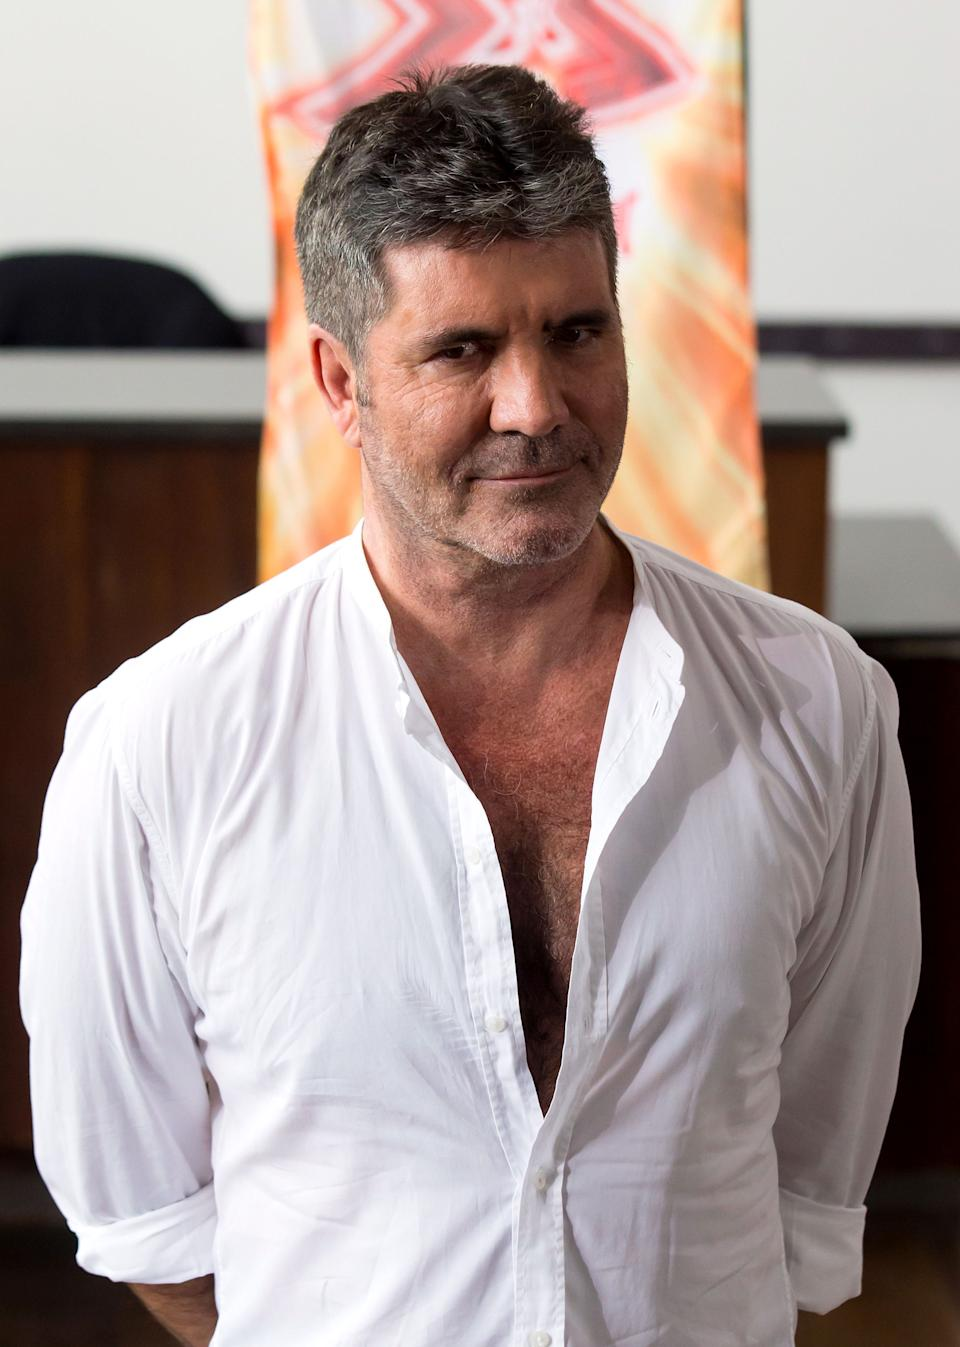 Simon Cowell attending X Factor filming at the Titanic Hotel, Liverpool. (Photo by Jon Super/PA Images via Getty Images)